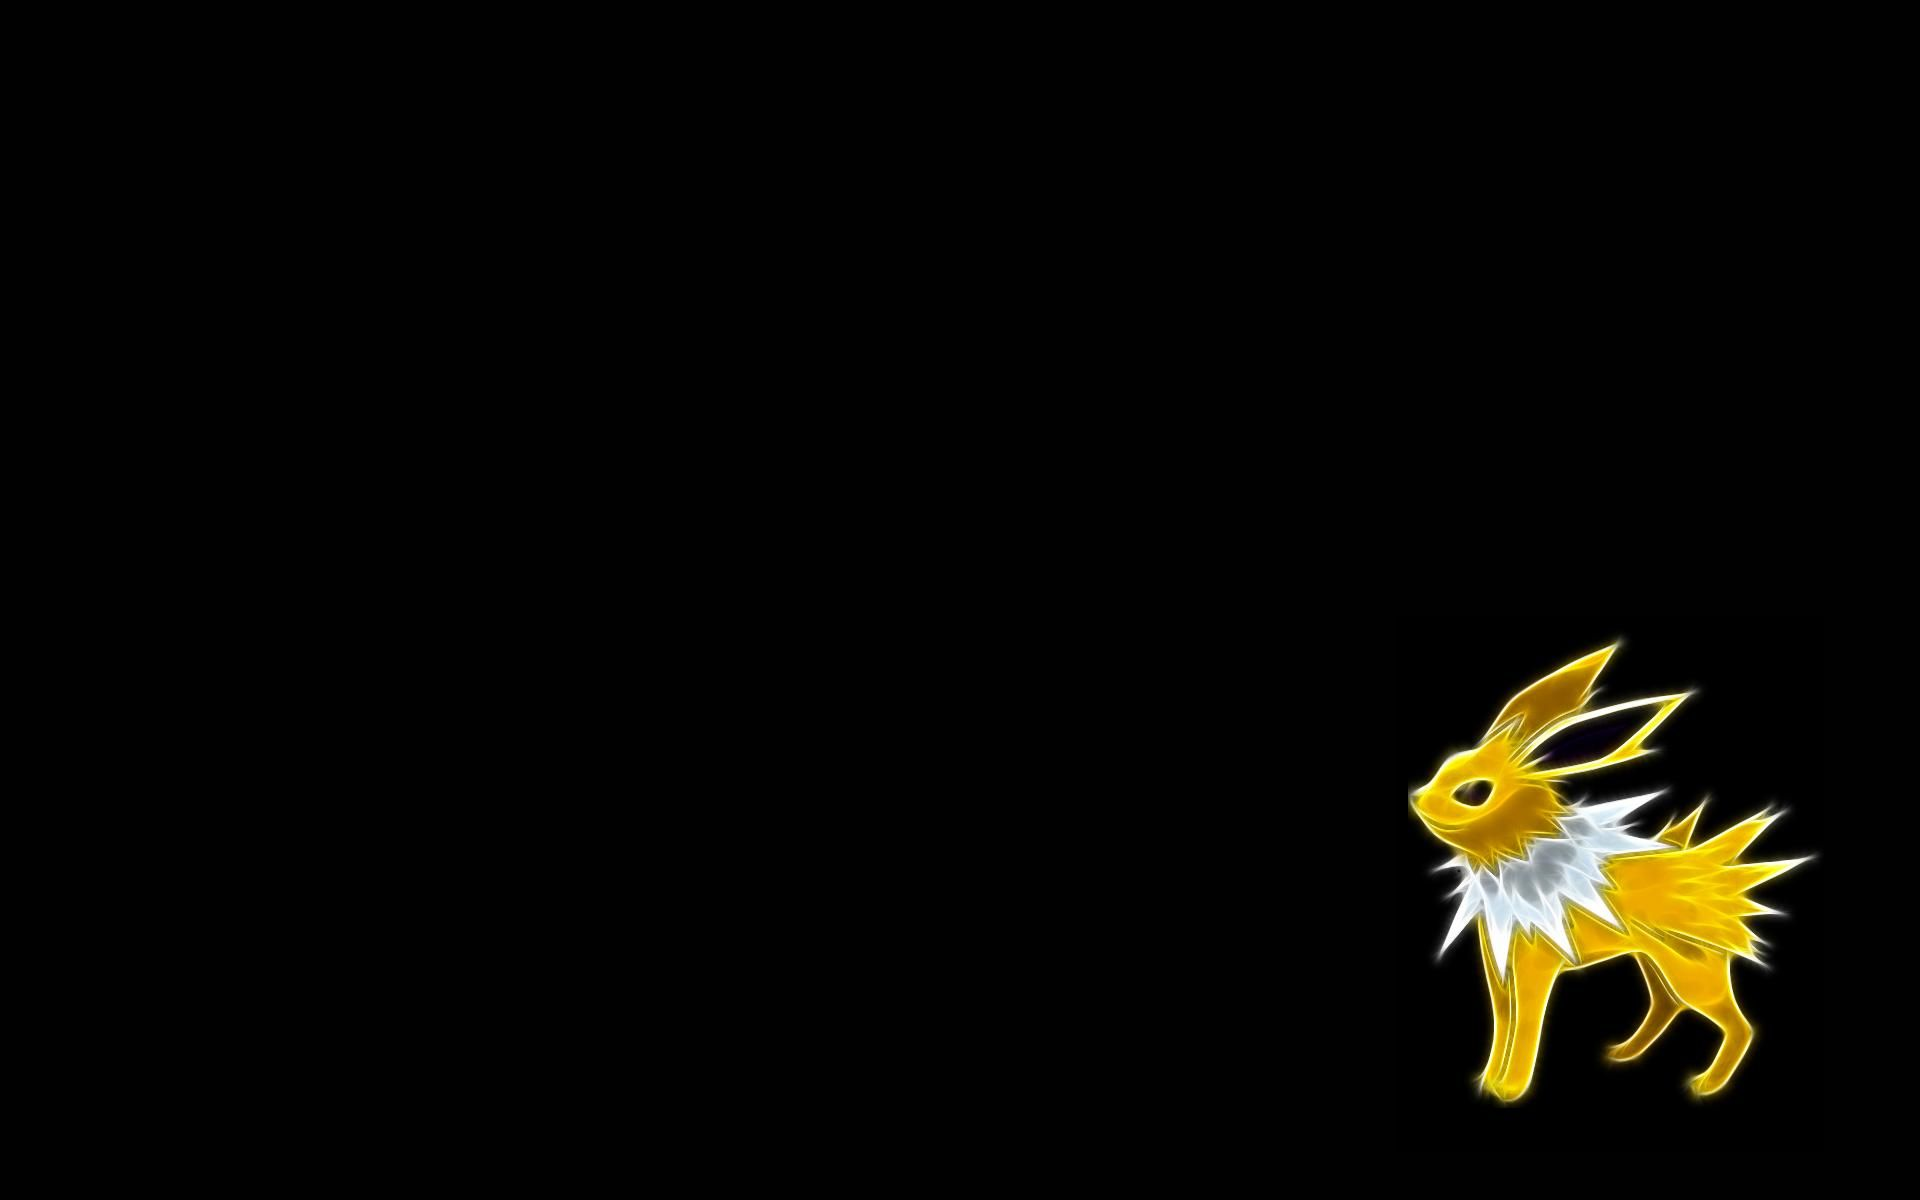 The Images Of Pokemon Jolteon Black Background Fresh Hd Wallpaper Black Background Wallpaper Black Pokemon Black Backgrounds